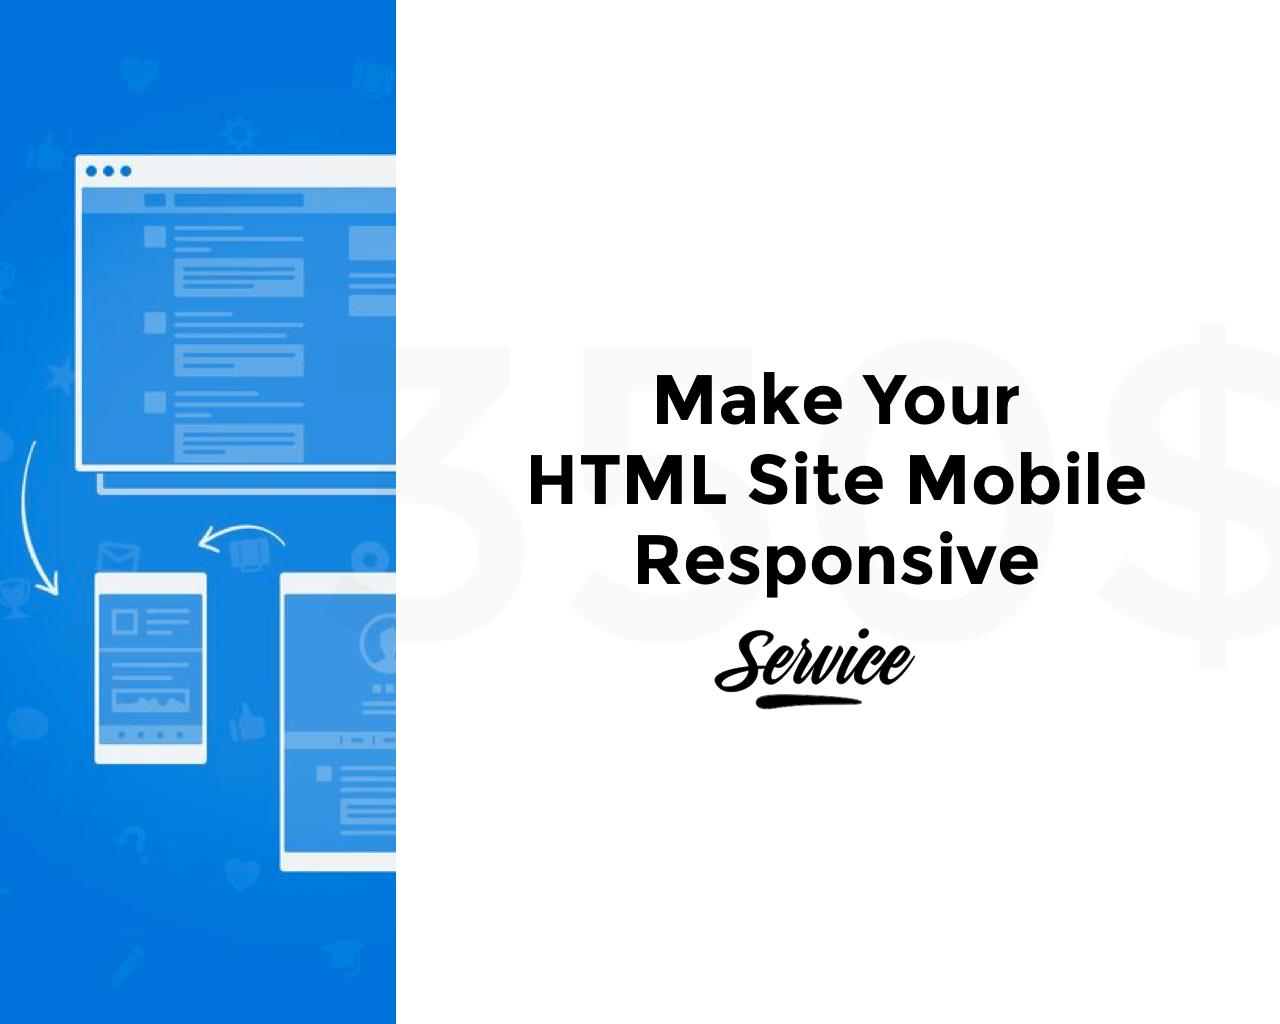 Make your HTML Site Mobile Responsive by pixelthrone - 103912